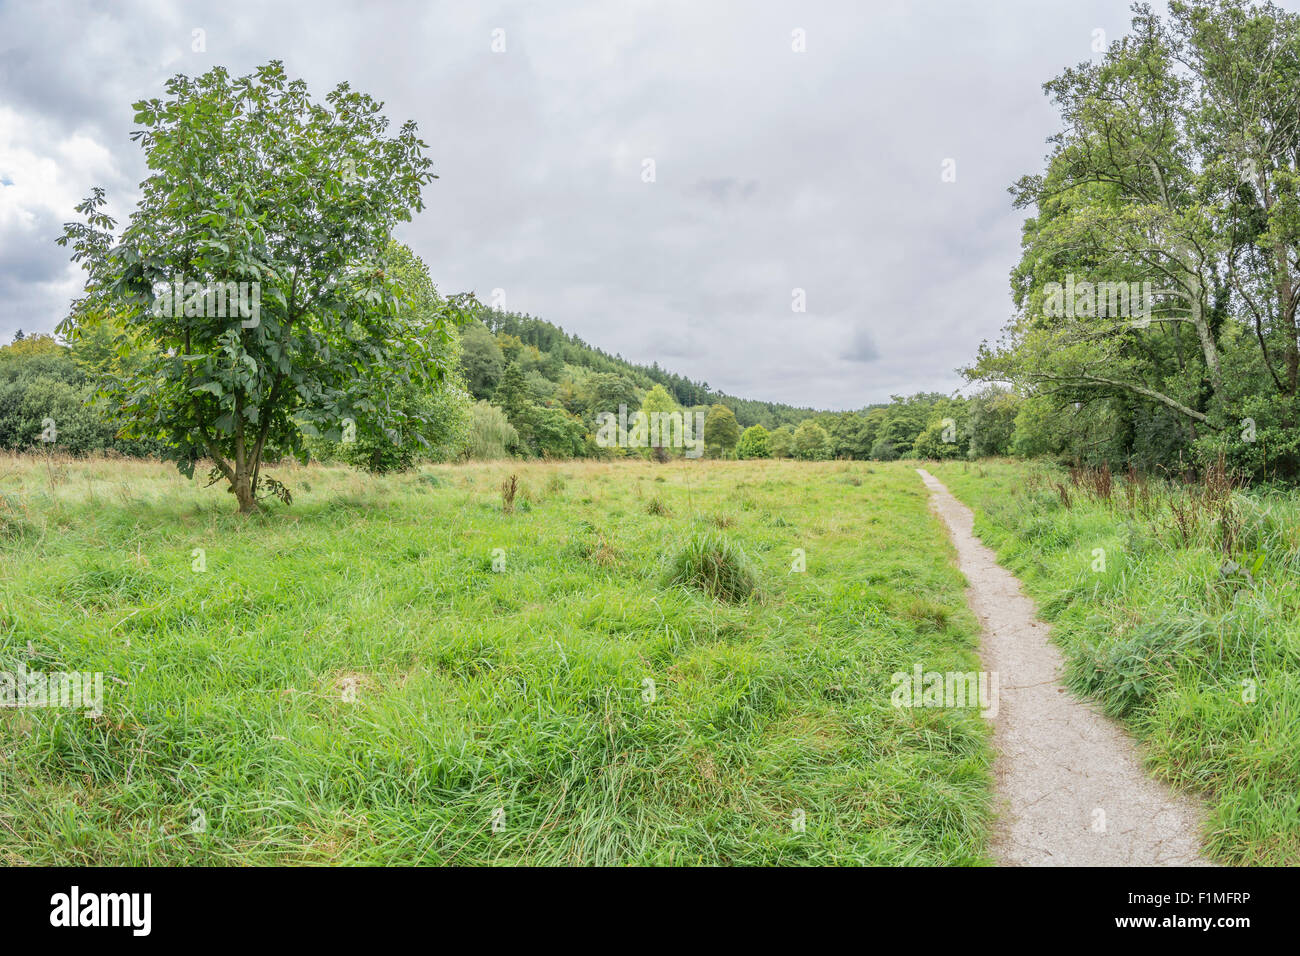 Fisheye landscape - municipal park area Lostwithiel. Stay on the right path metaphor. - Stock Image